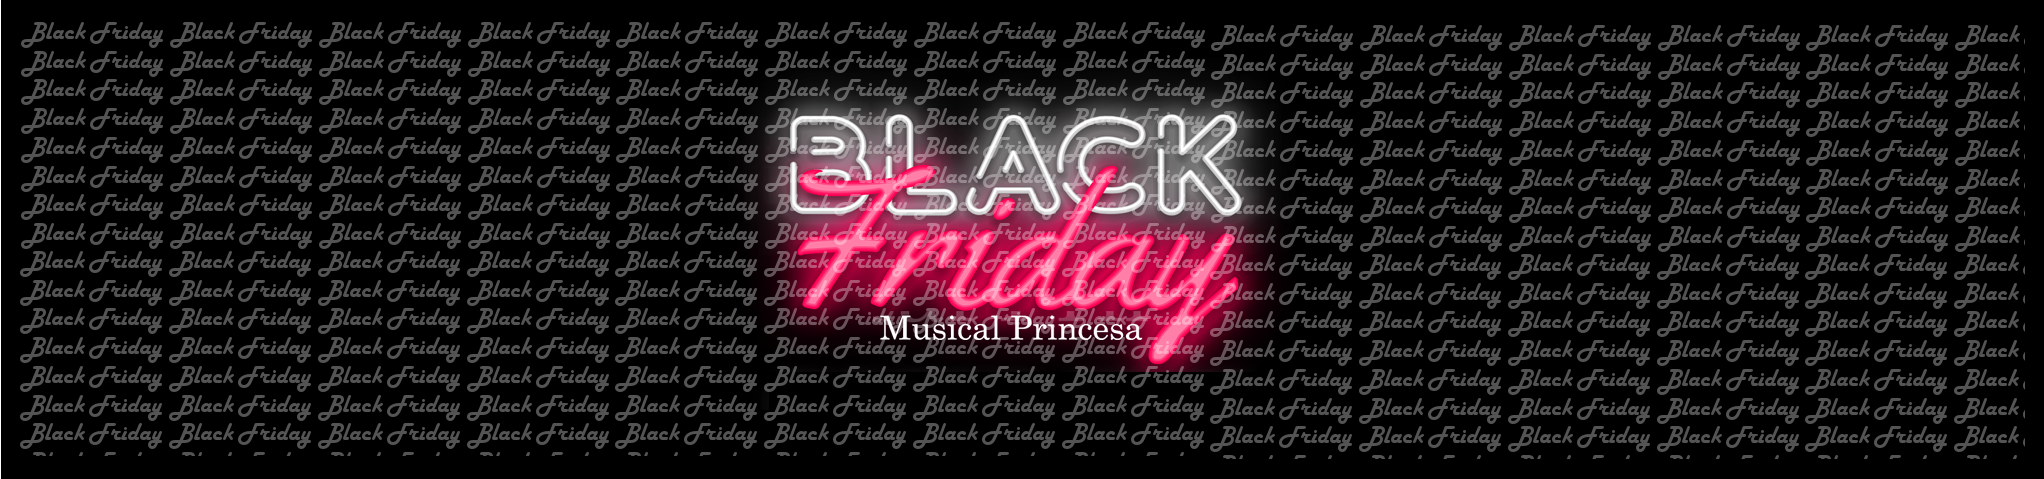 5240868BlackFridayBannerNeon